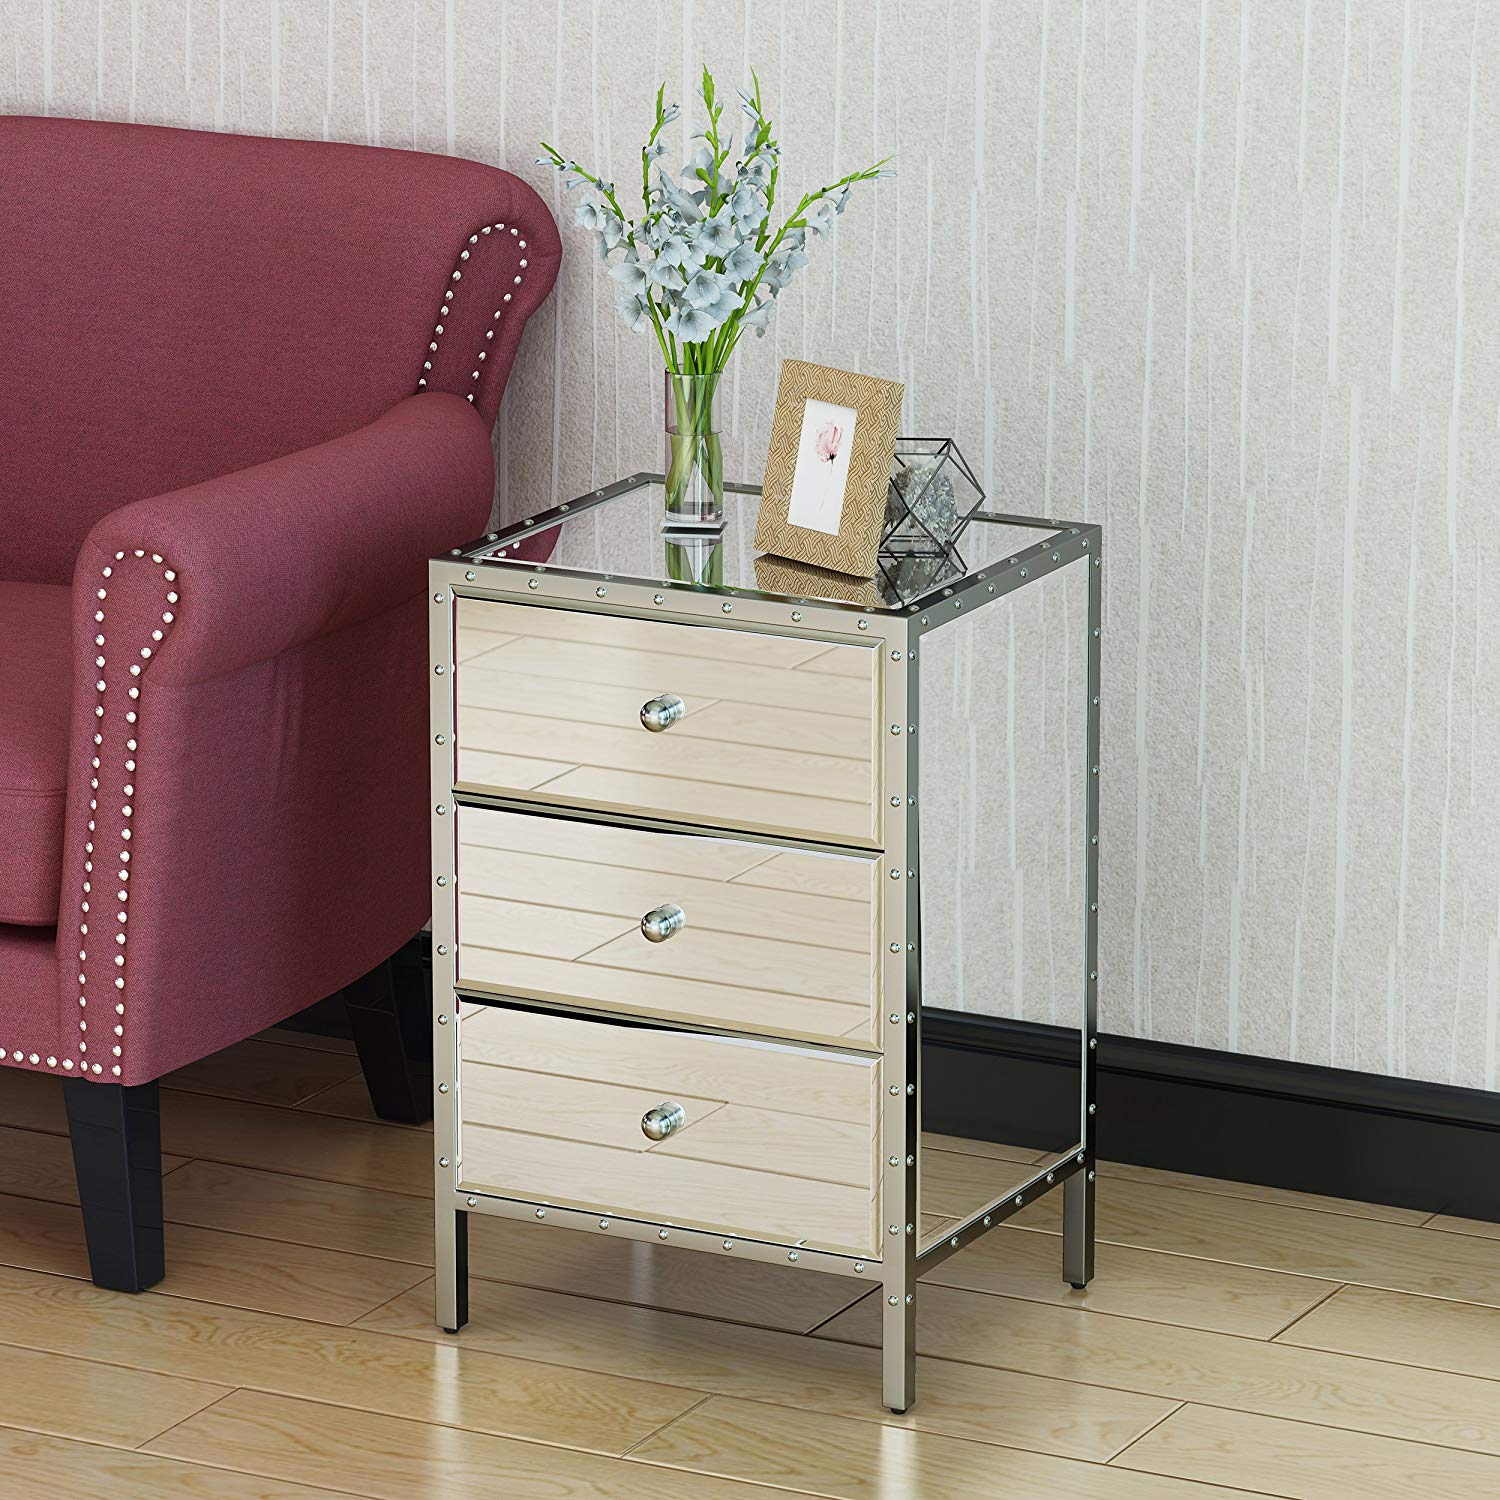 drawer mirrored side table small chest diamond accent drawers stylish all glass design kitchen dining light colored wood end tables furniture astoria round and metal coffee west